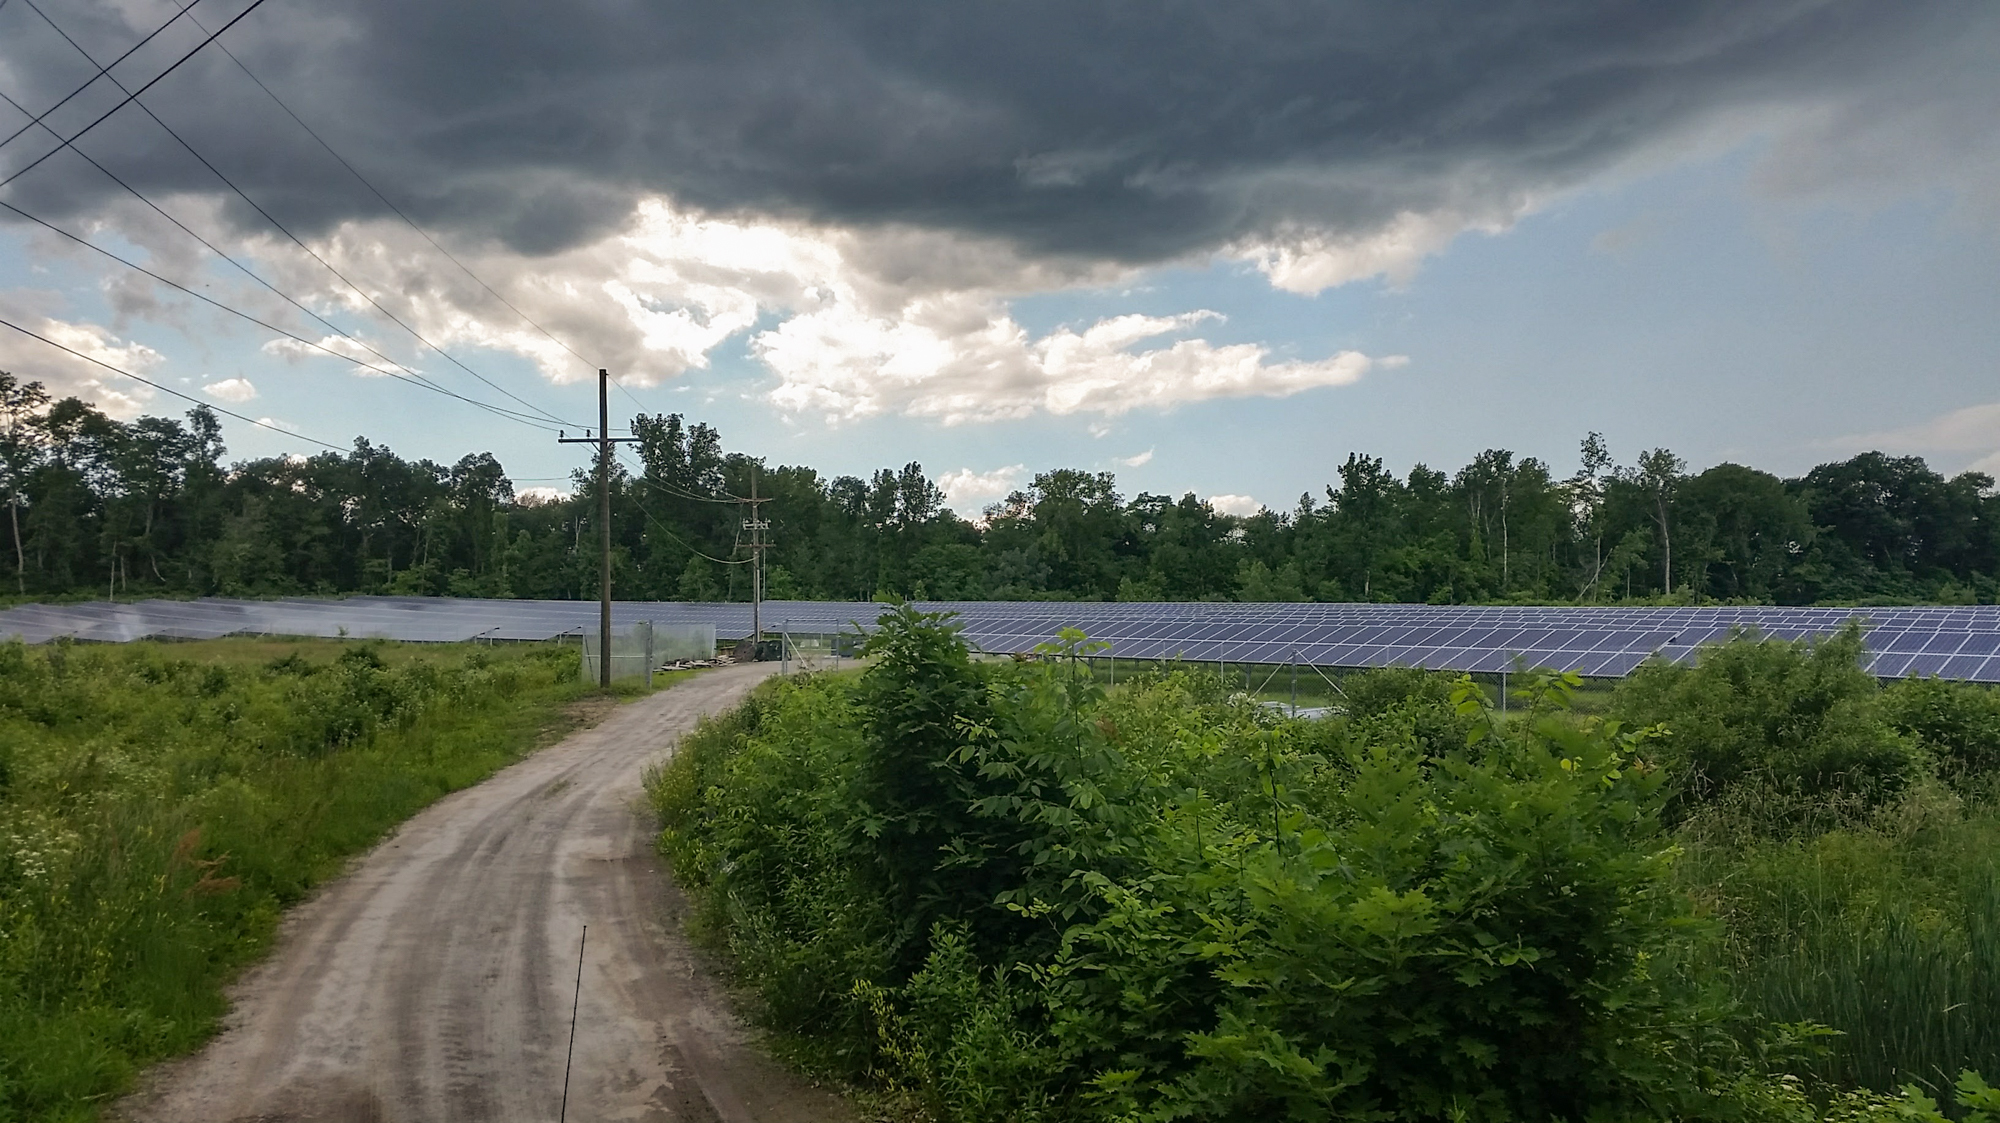 Farmer Kevin Sullivan put solar panels on a portion of his property in Suffield, Conn.